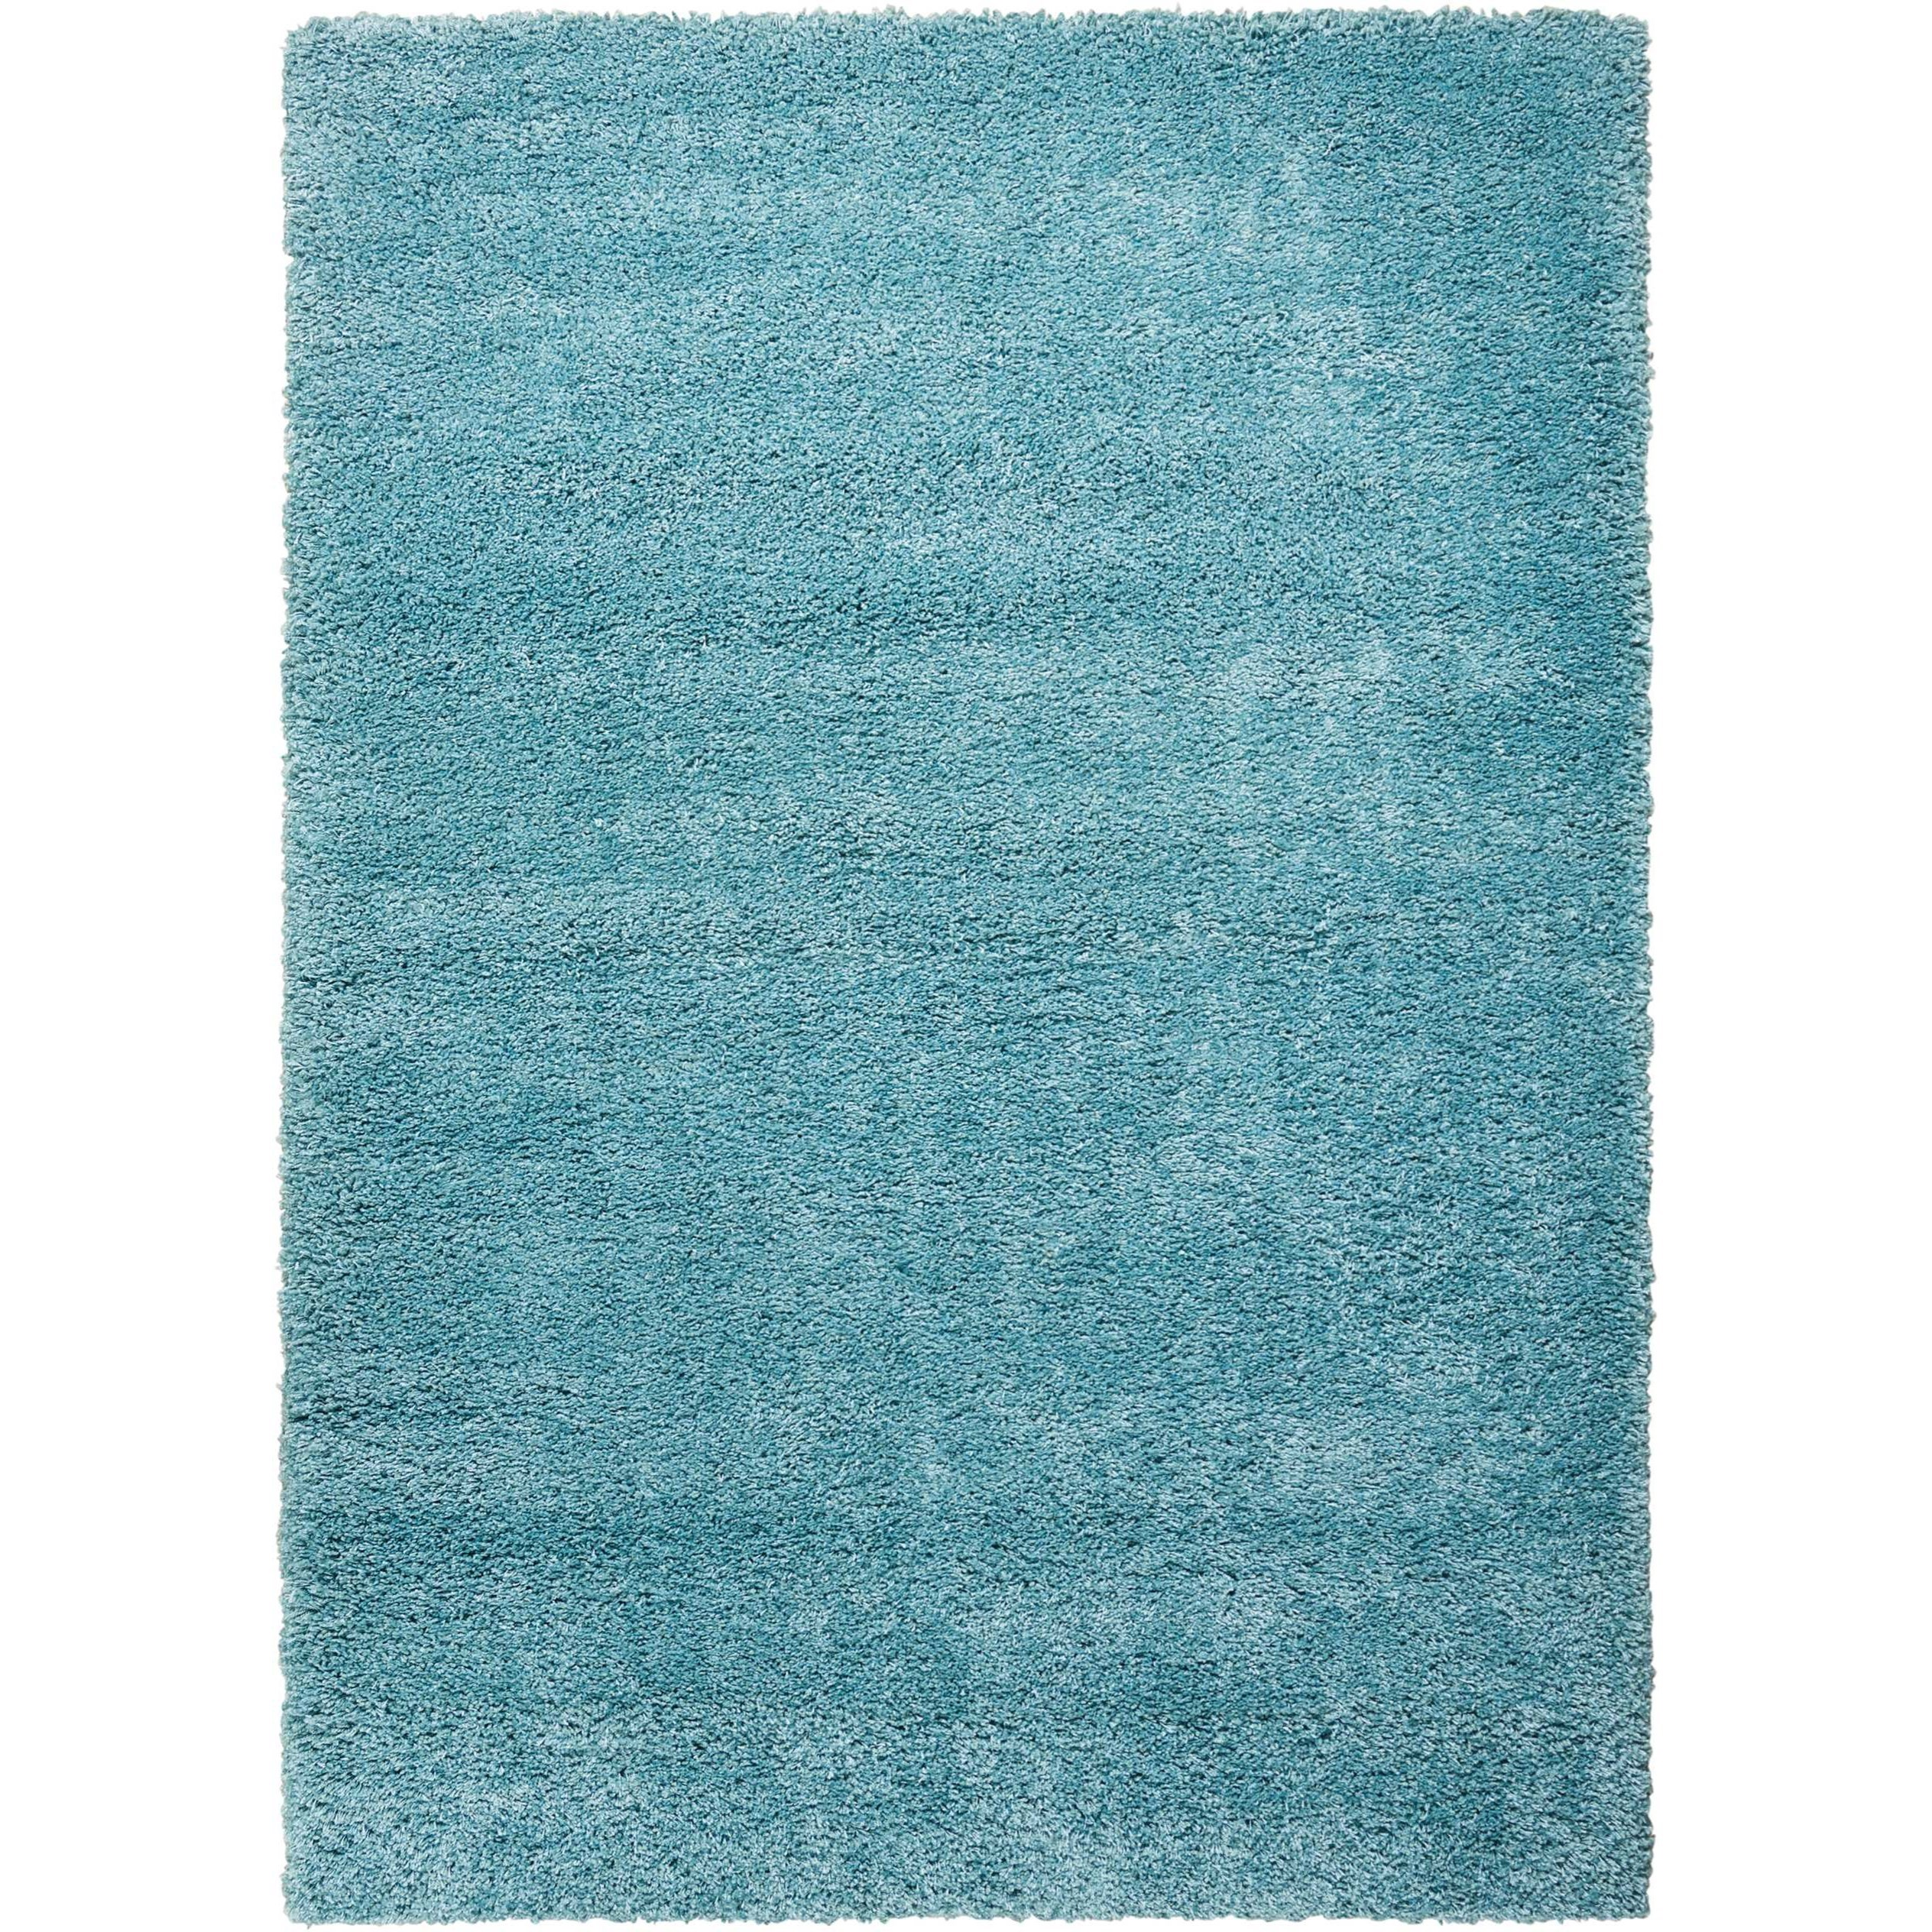 Amore Amore AMOR1 Blue 5'x8' Area Rug by Nourison at Home Collections Furniture